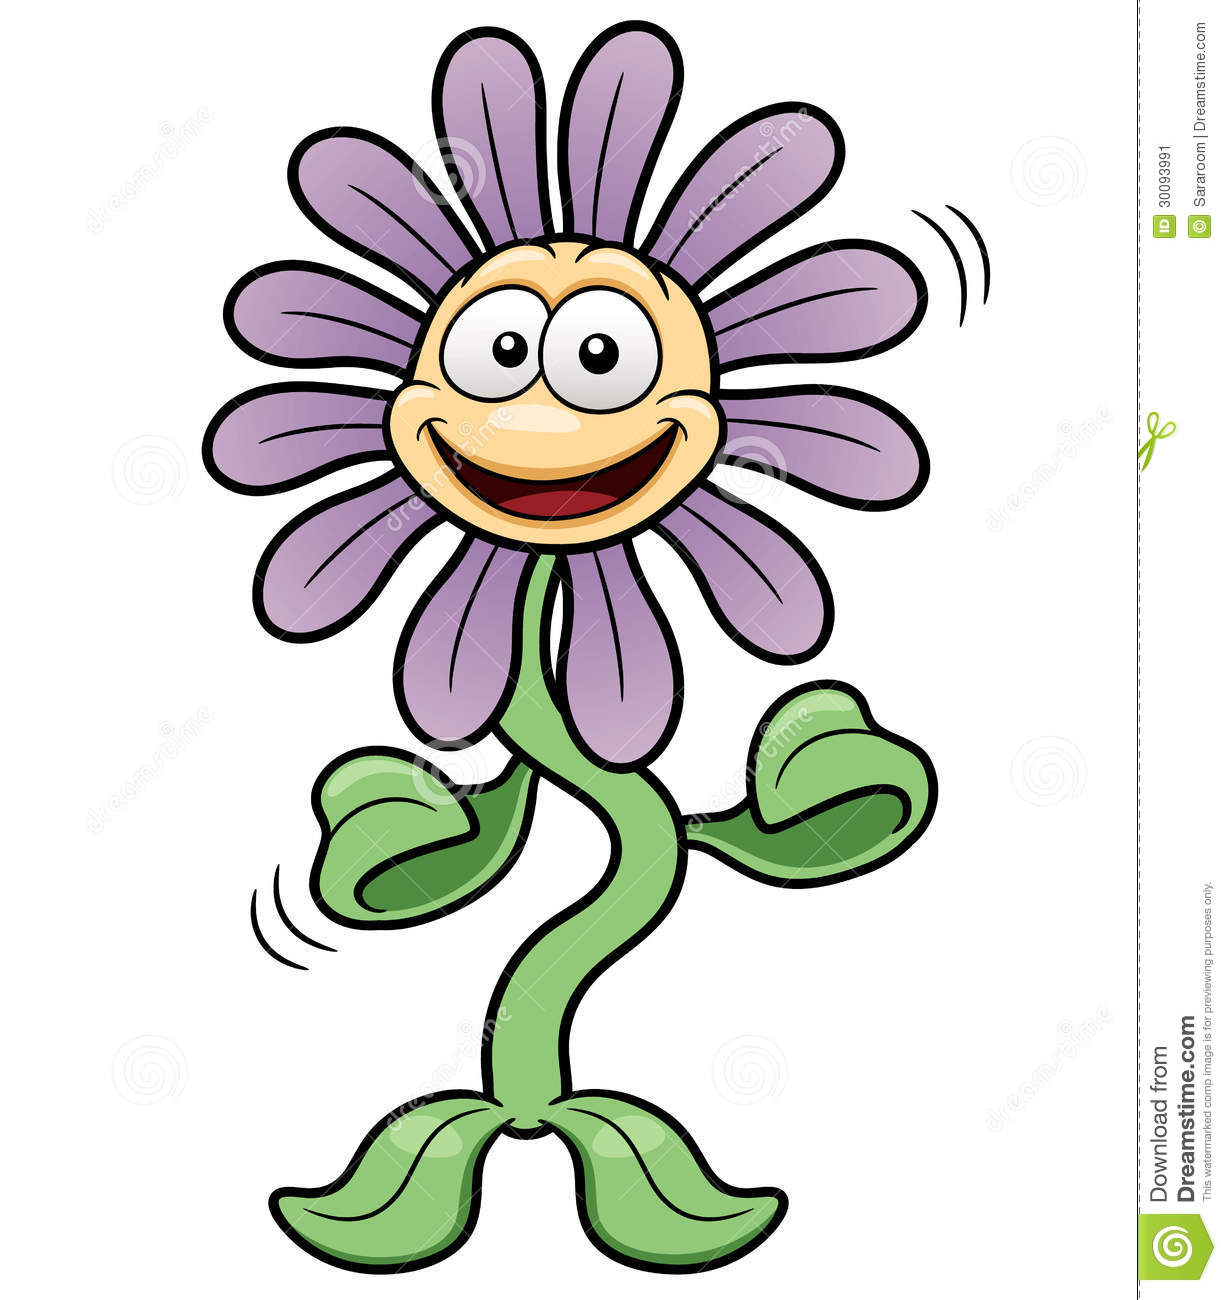 Cartoon Flower Dance Stock Image - Image: 30093991